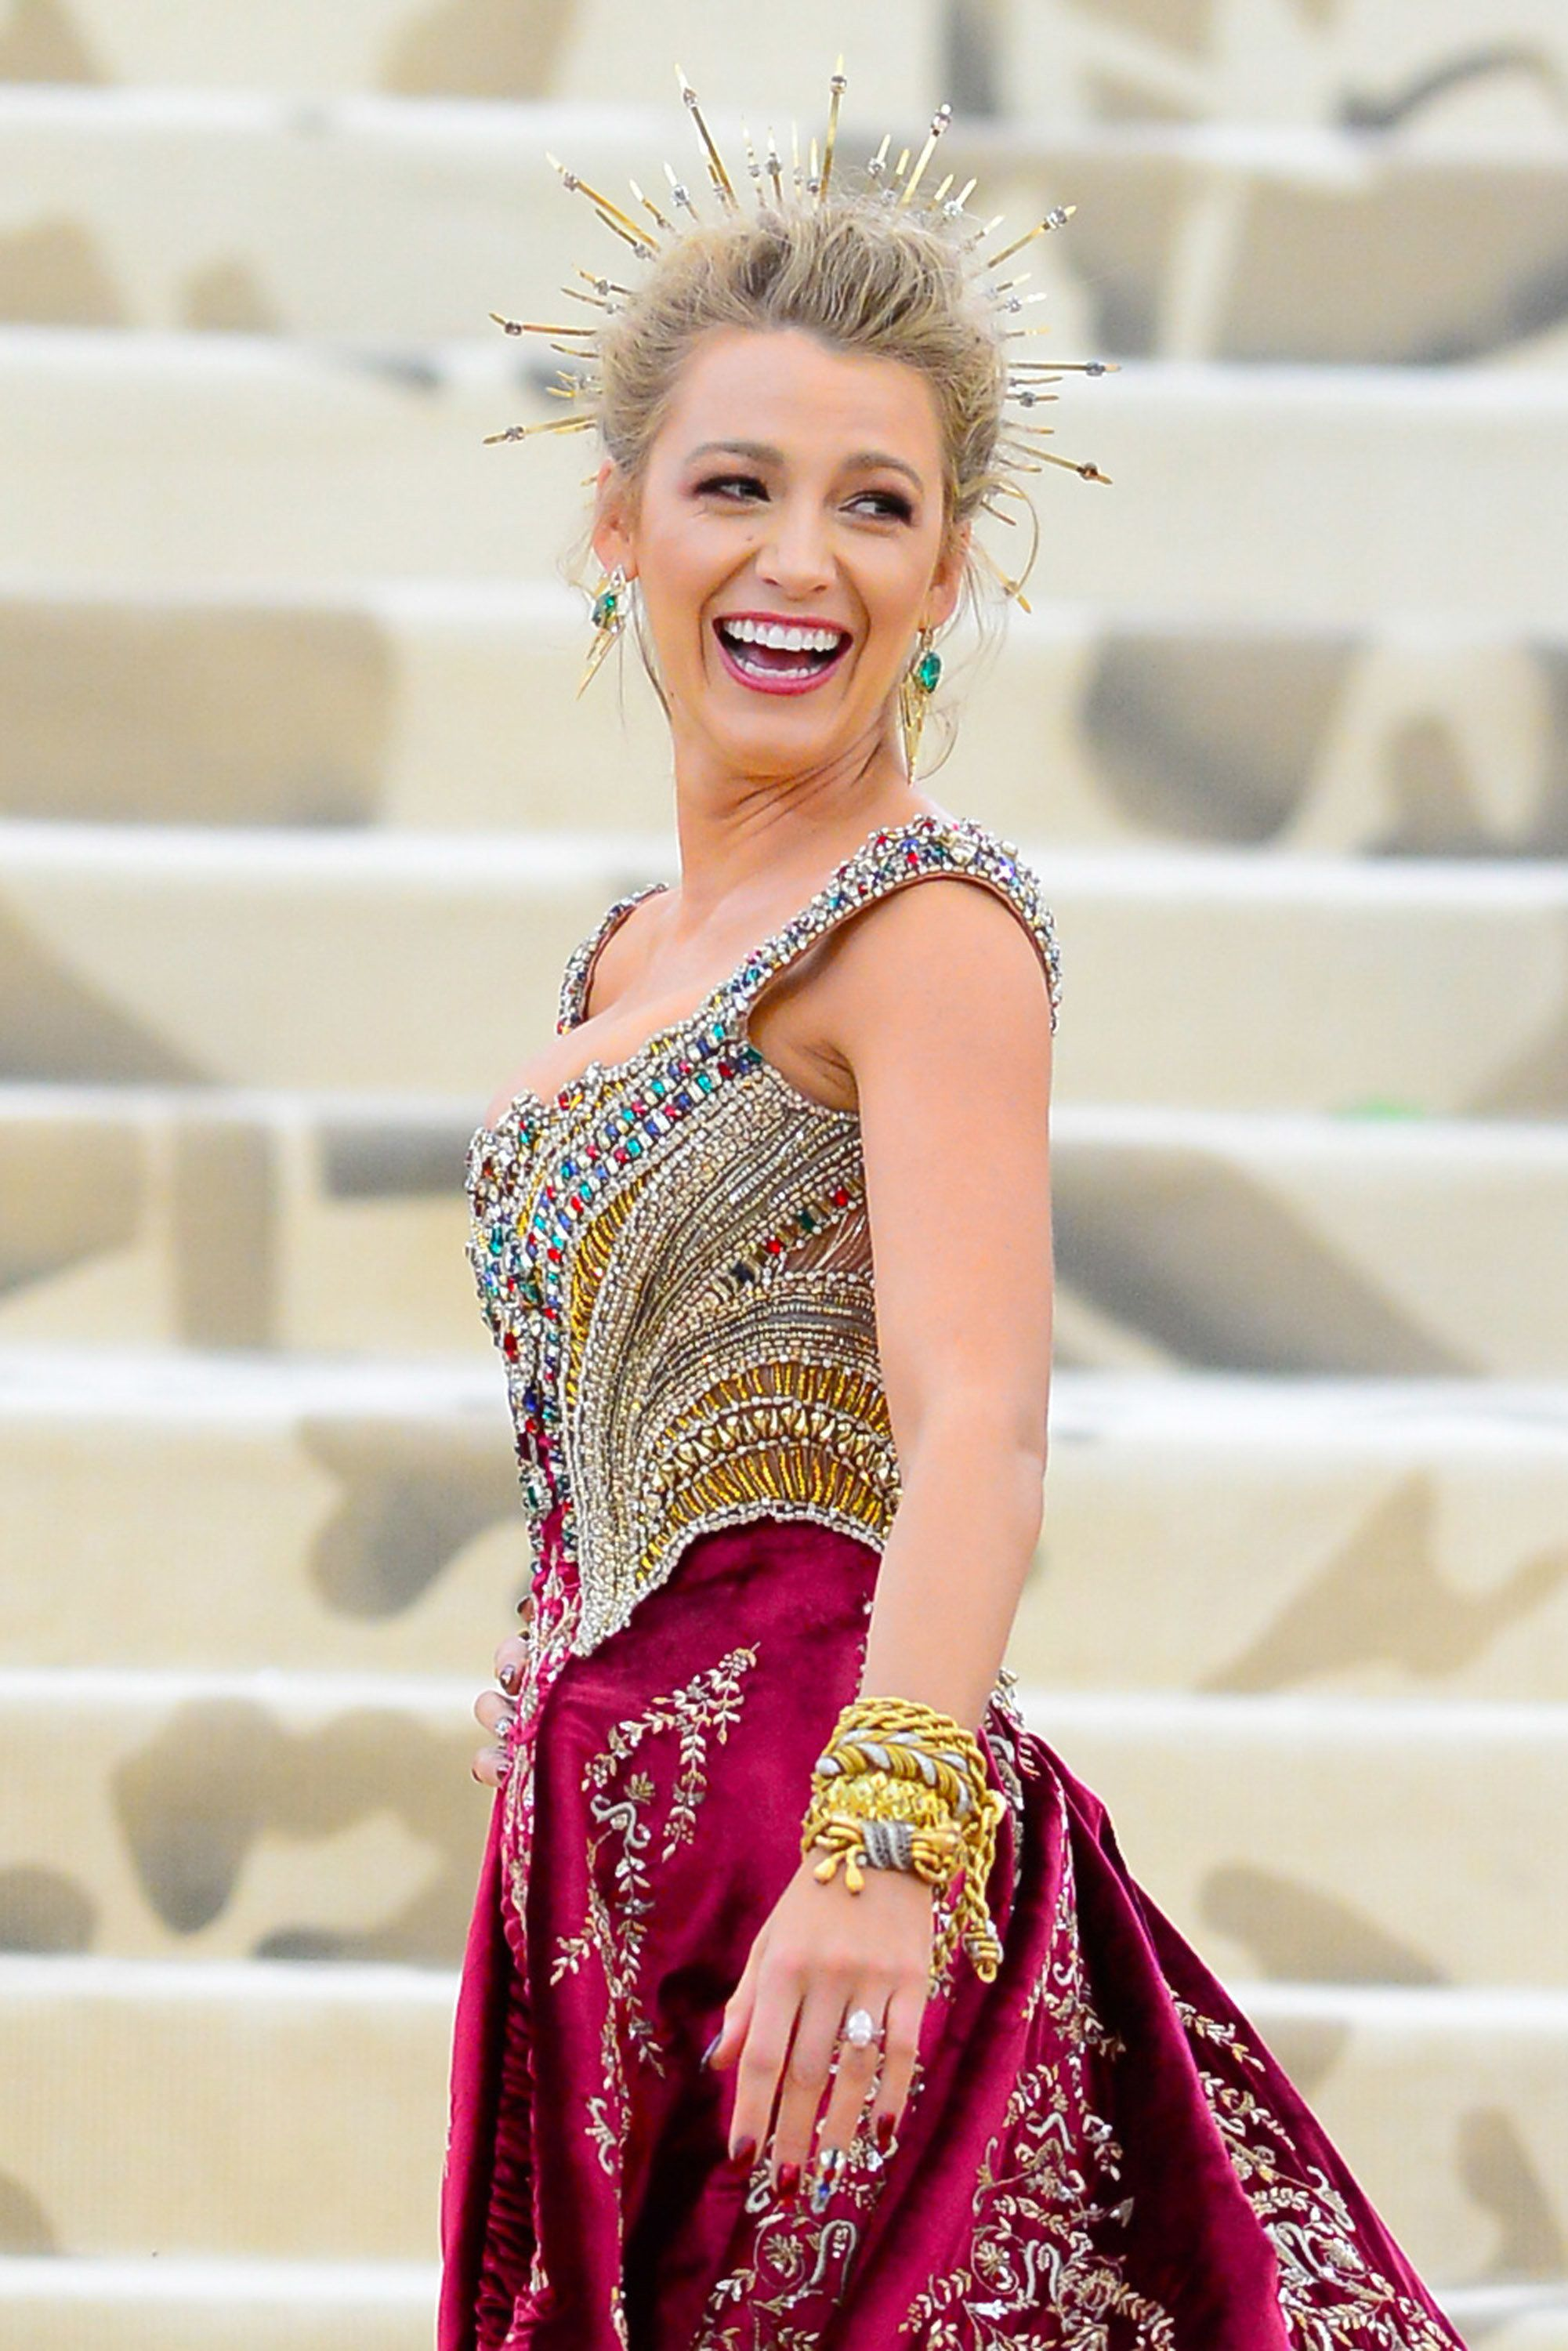 Blake Lively Brought Her Family To The Met Gala Without